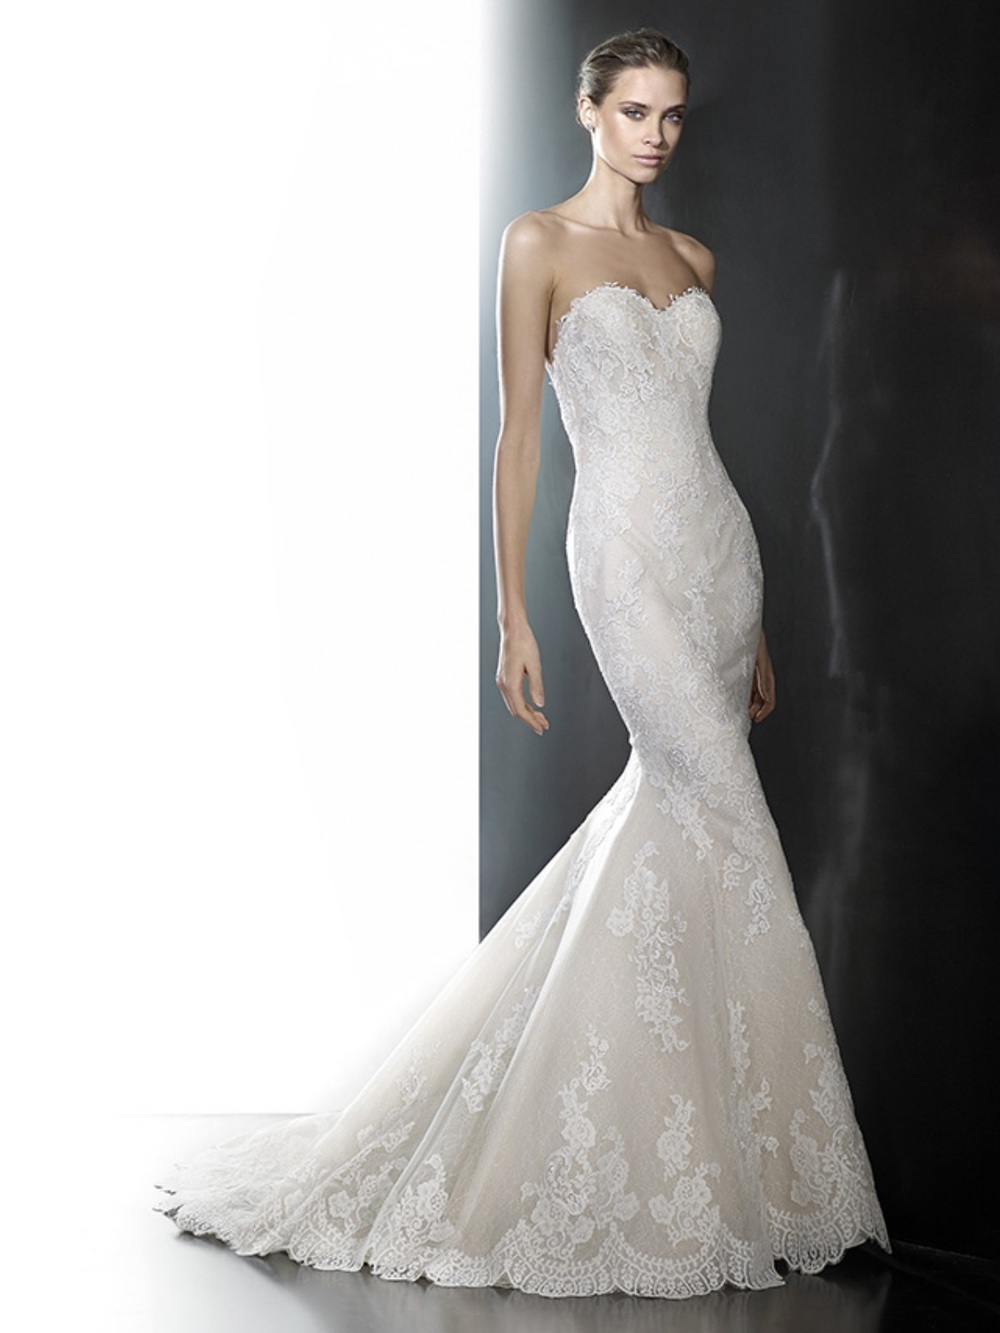 Photo via Pronovias.